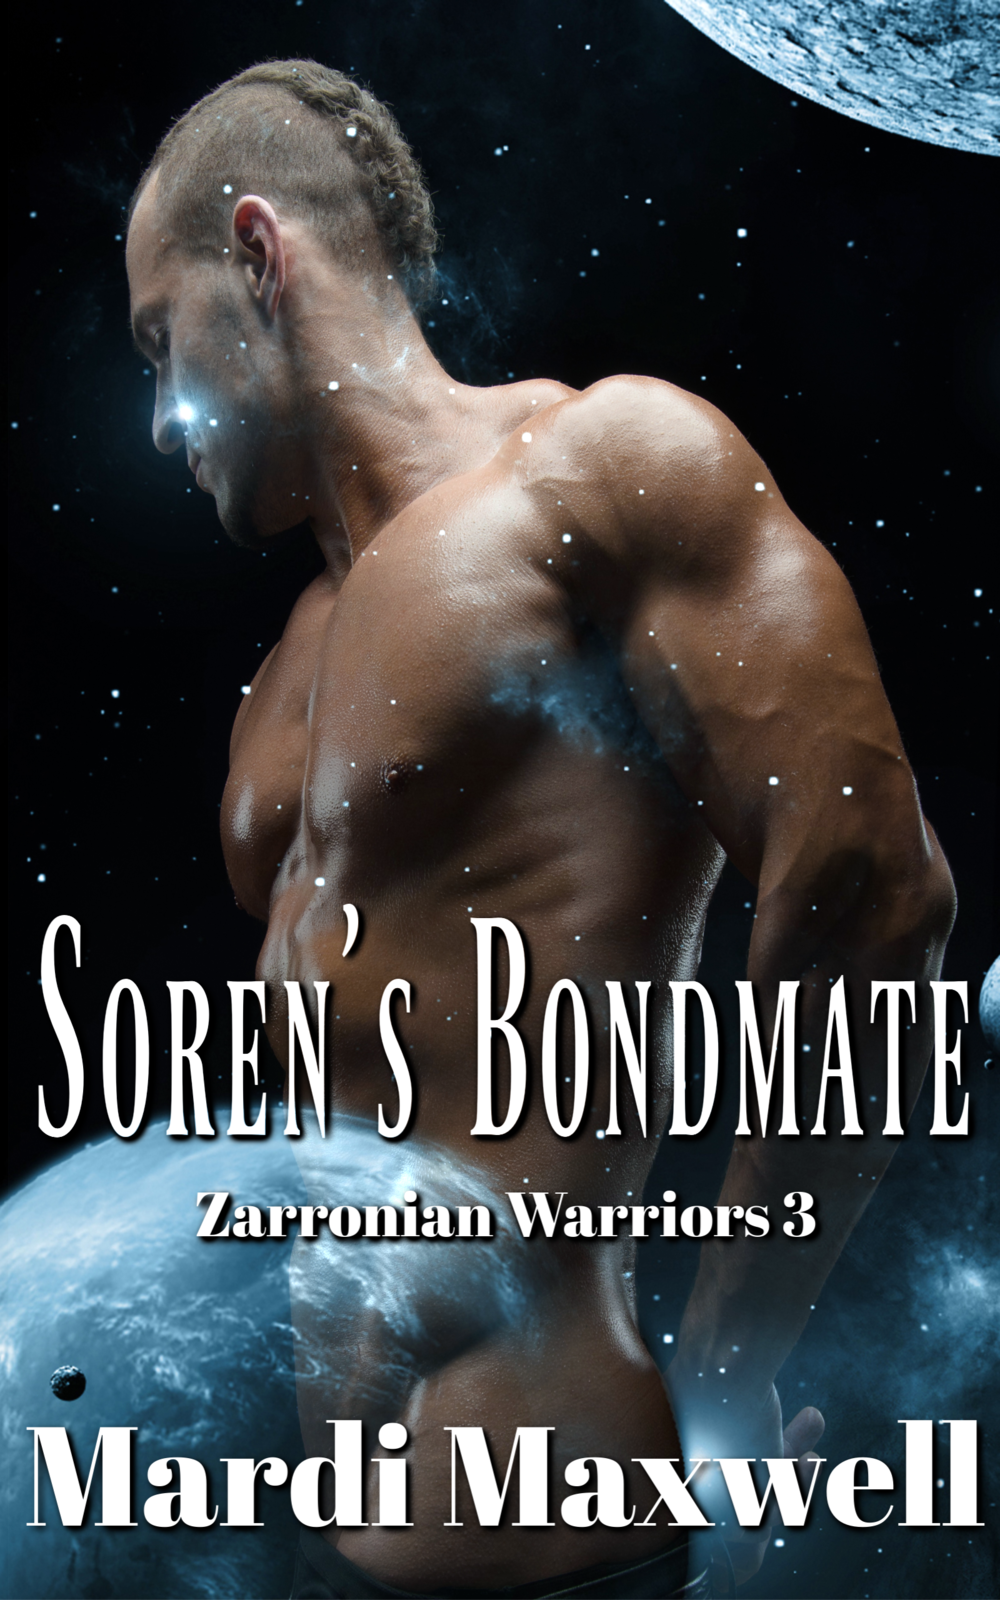 Soren's Bondmate - Soren Valanson is a fierce Zarronian warrior but he's also a level six when it comes to bonding and finding a compatible female. An impossible task as no known level six females have ever been found. With his mating fever nearing its end he leaves Zarronia and travels to an unexplored galaxy where his starship is attacked. During the battle to save his crew Soren's starglider is damaged and crashes to a small frozen planet. Krystali enchantress, Skye Ka-Hal is hiding from would-be kidnappers who want to claim her powers for their own. She's one of the few Krystali females who can manipulate the elements and produce dark krystal, a powerful weapon. When she sees an object crash near her home she investigates and finds an injured warrior in the wreckage. He's dying but she can save him if she takes a risk and claims him without his full consent. A deed that will end in her death if its discovered by the Krystali Kouncil.